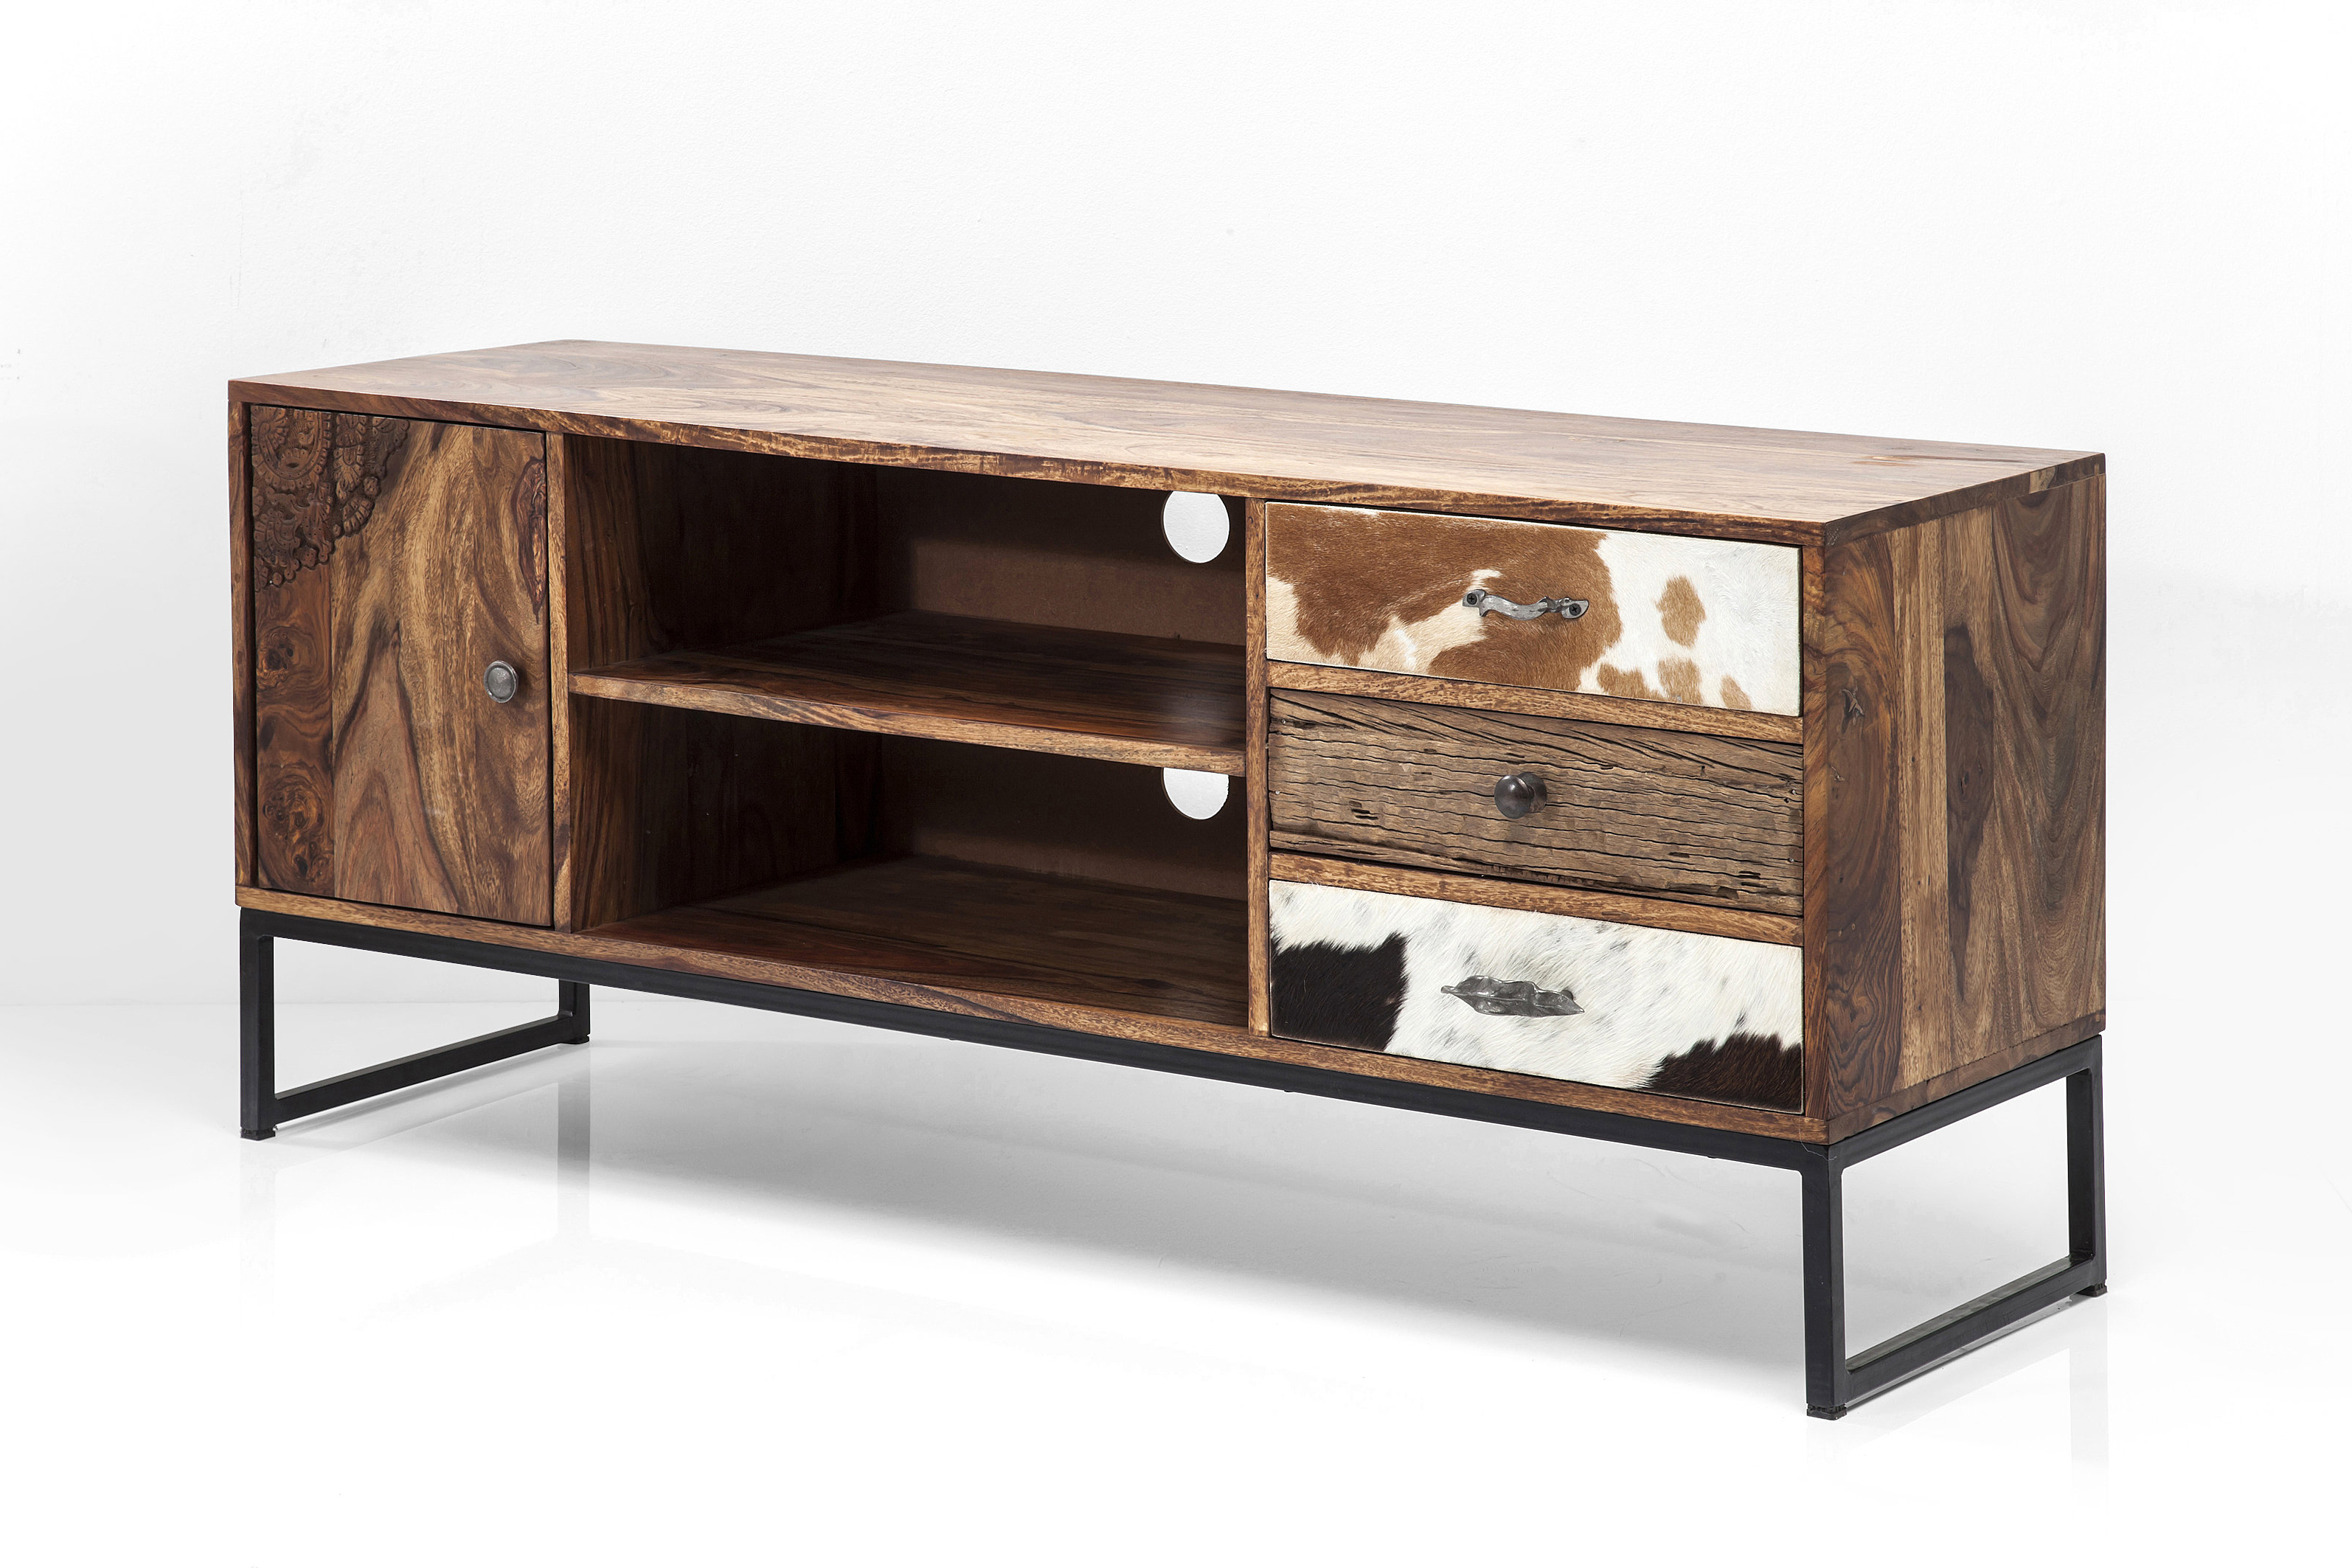 Industrial Tv Stands You'll Love (Gallery 6 of 20)